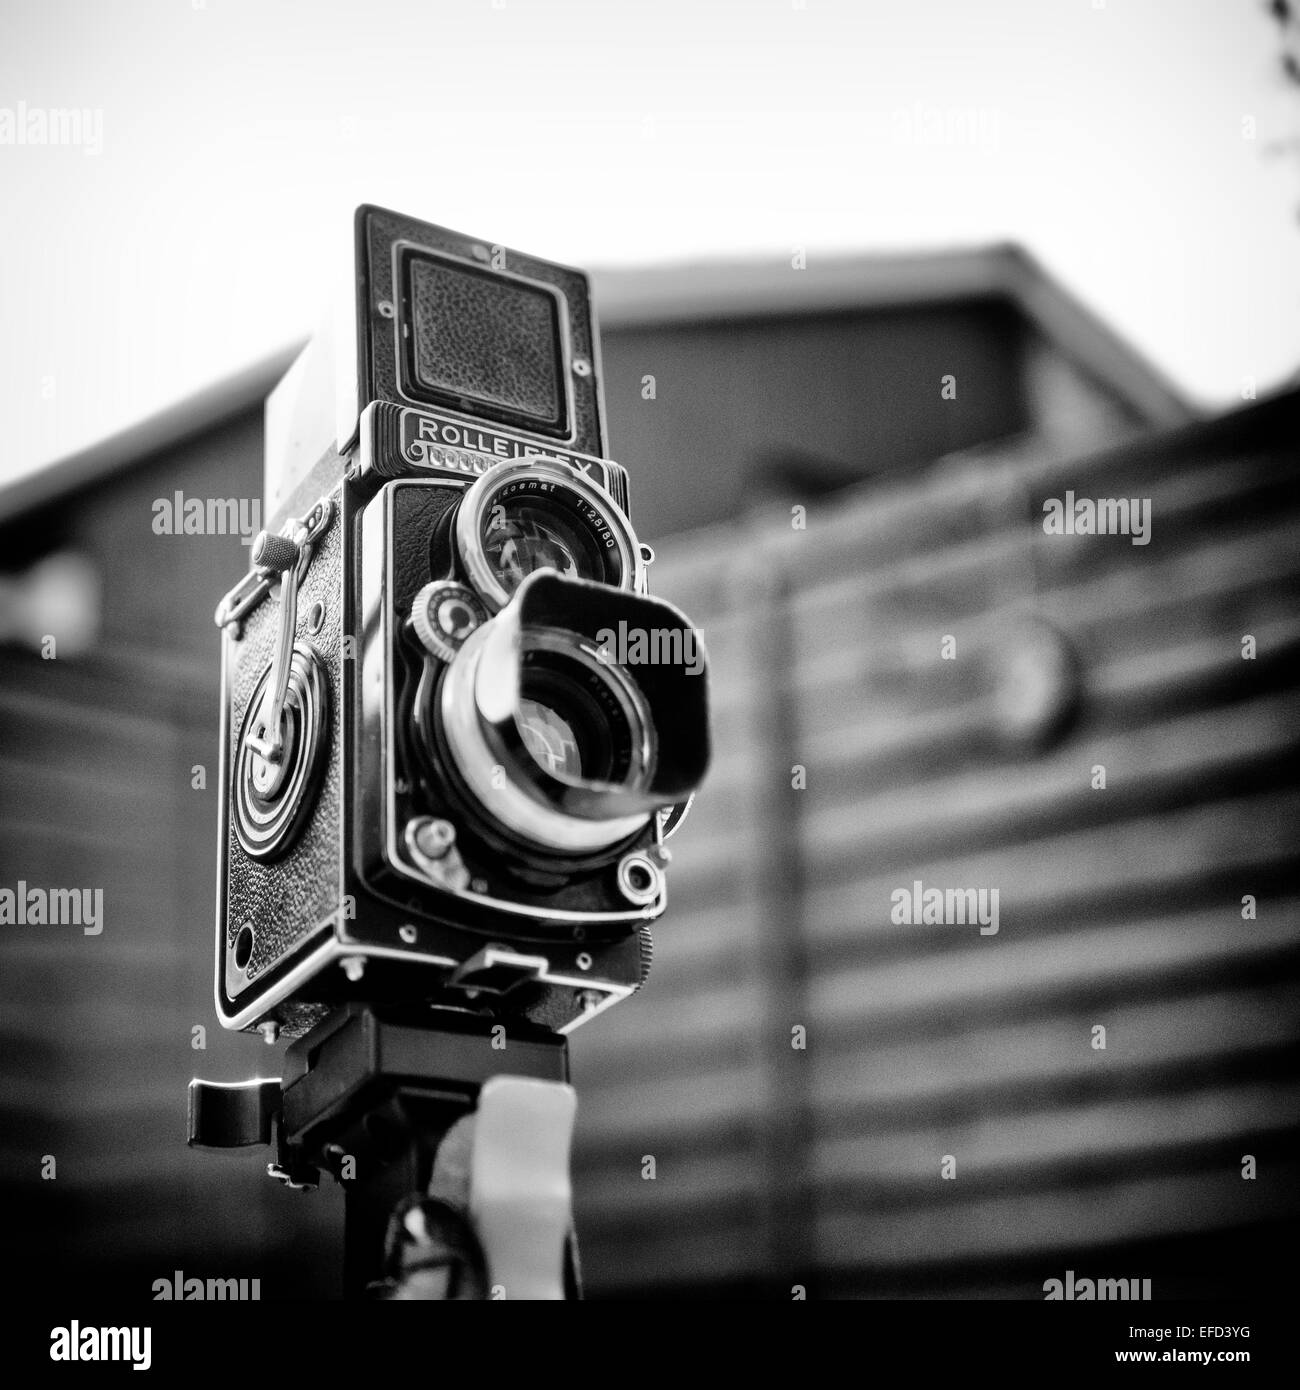 Rolleiflex Twin Lens Reflex Camera Stock Photo